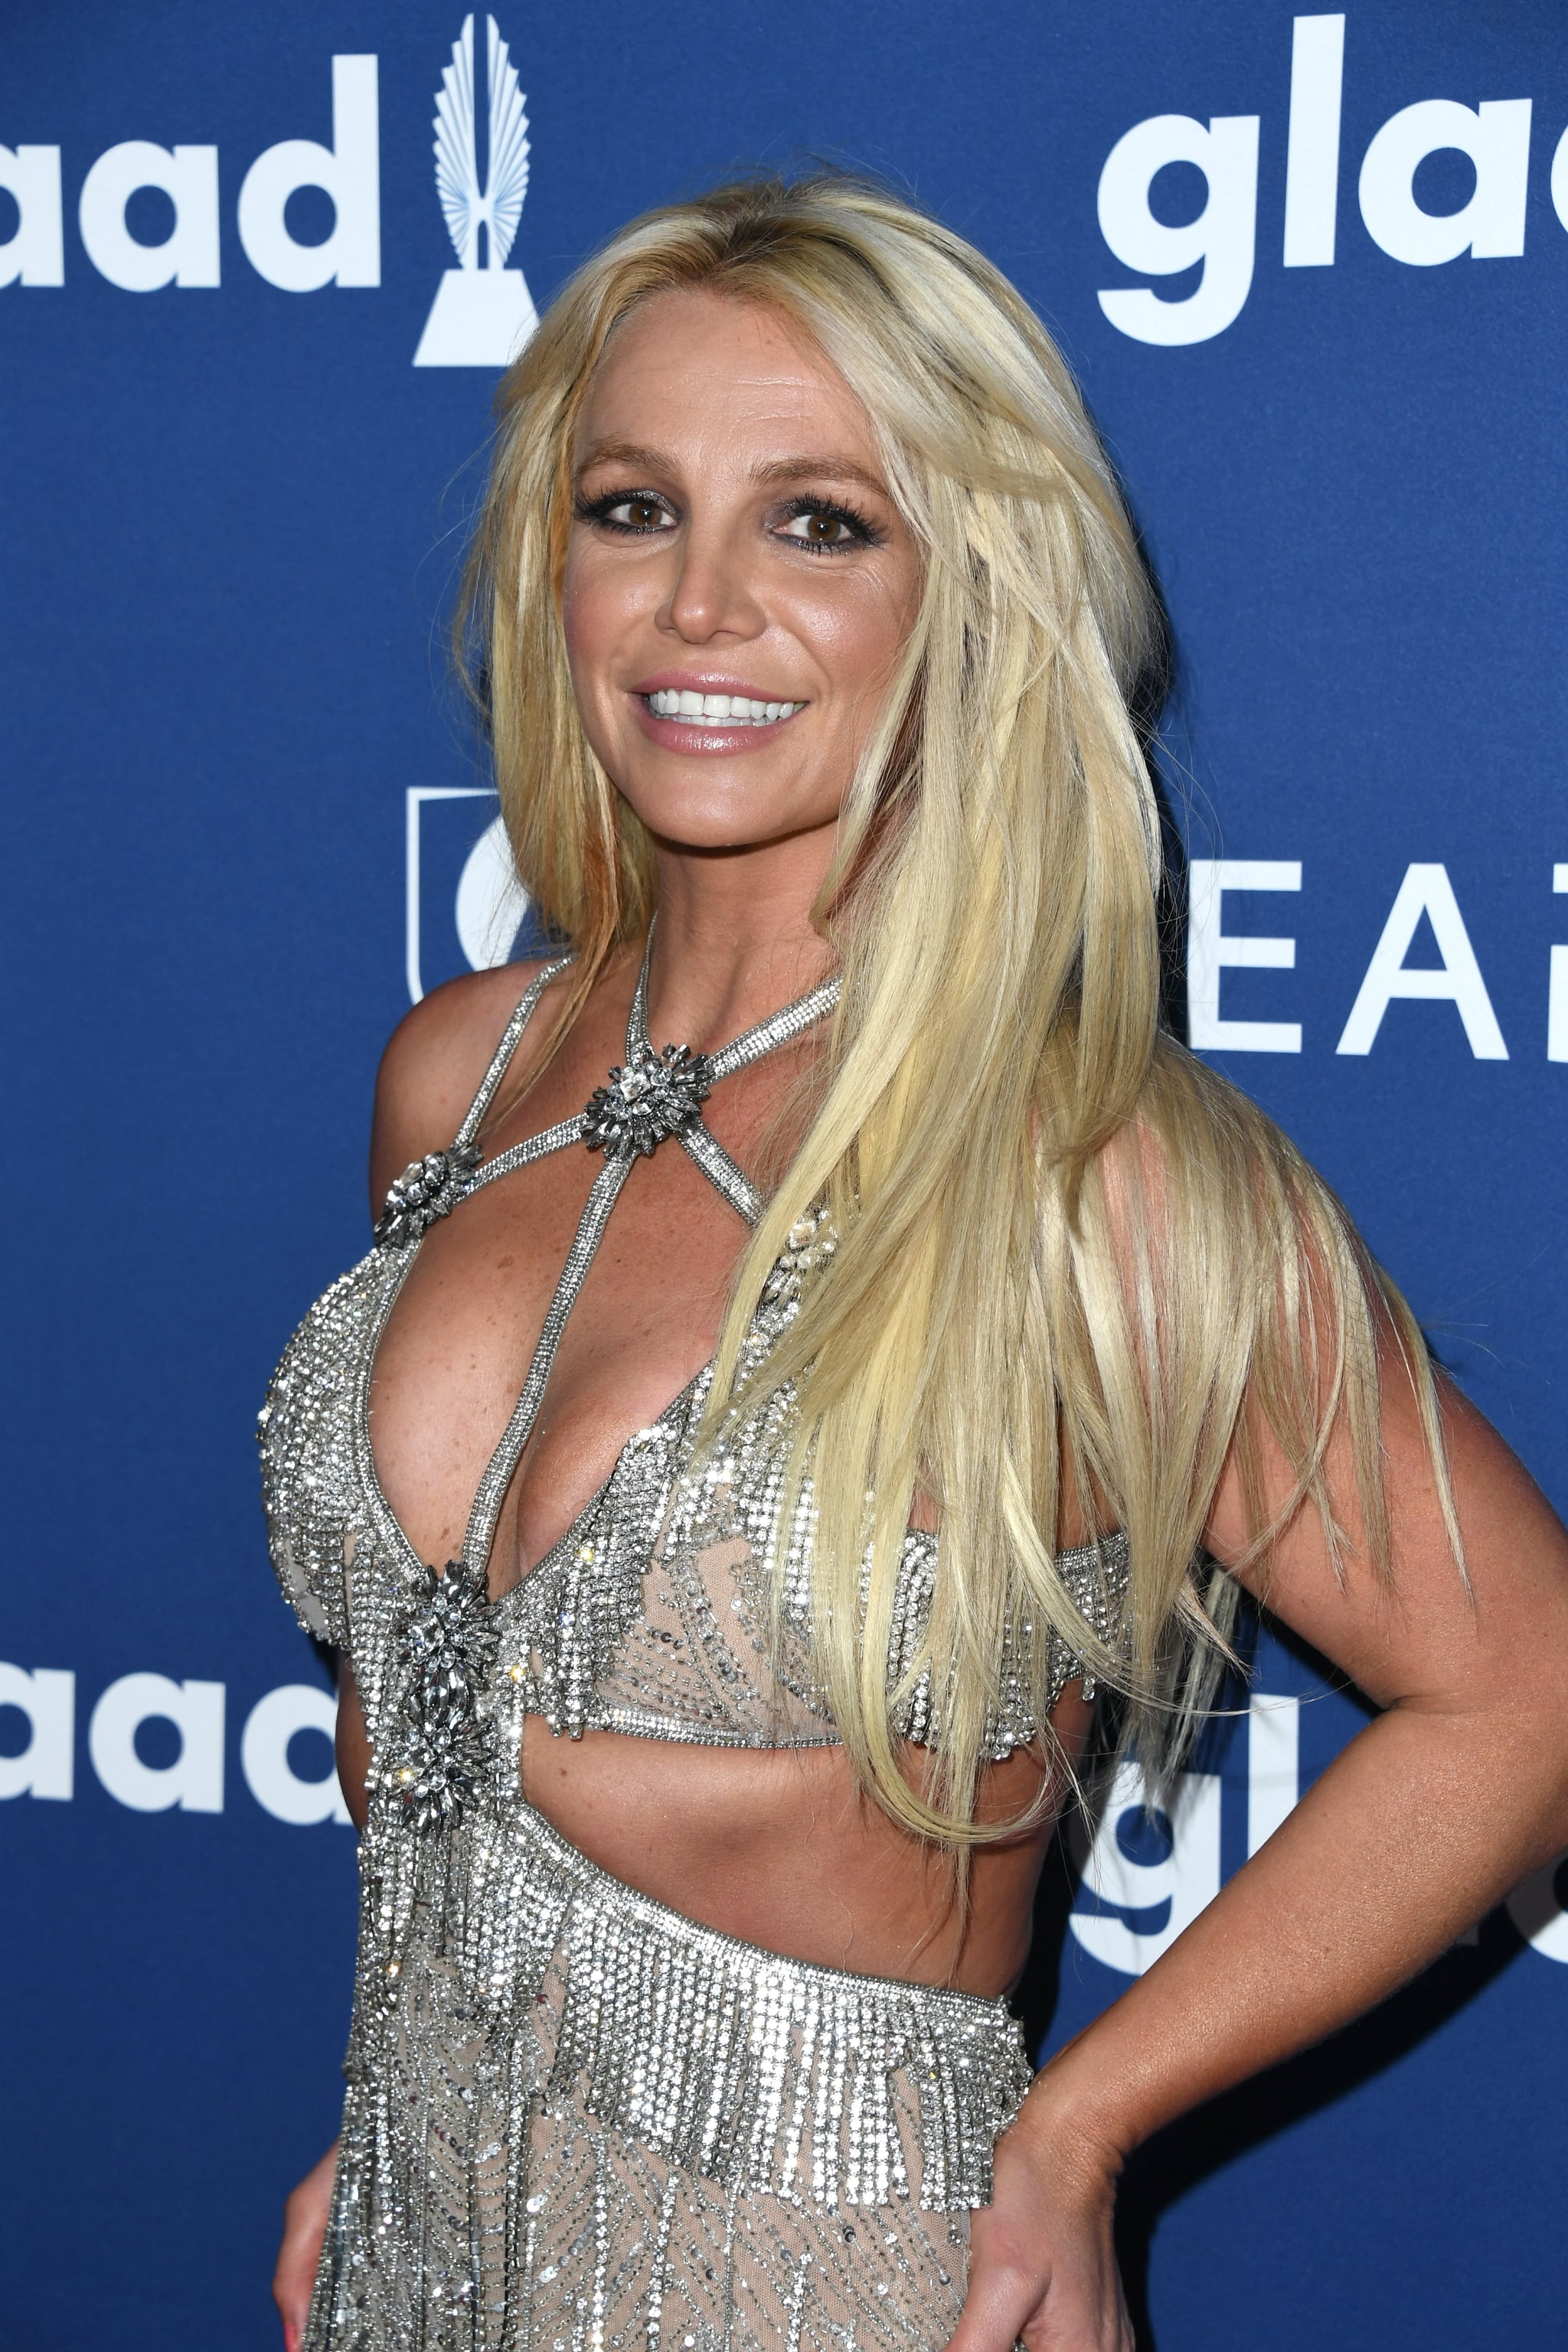 BEVERLY HILLS, CA - APRIL 12:  Honoree Britney Spears attends the 29th Annual GLAAD Media Awards at The Beverly Hilton Hotel on April 12, 2018 in Beverly Hills, California.  (Photo by Jon Kopaloff/FilmMagic)